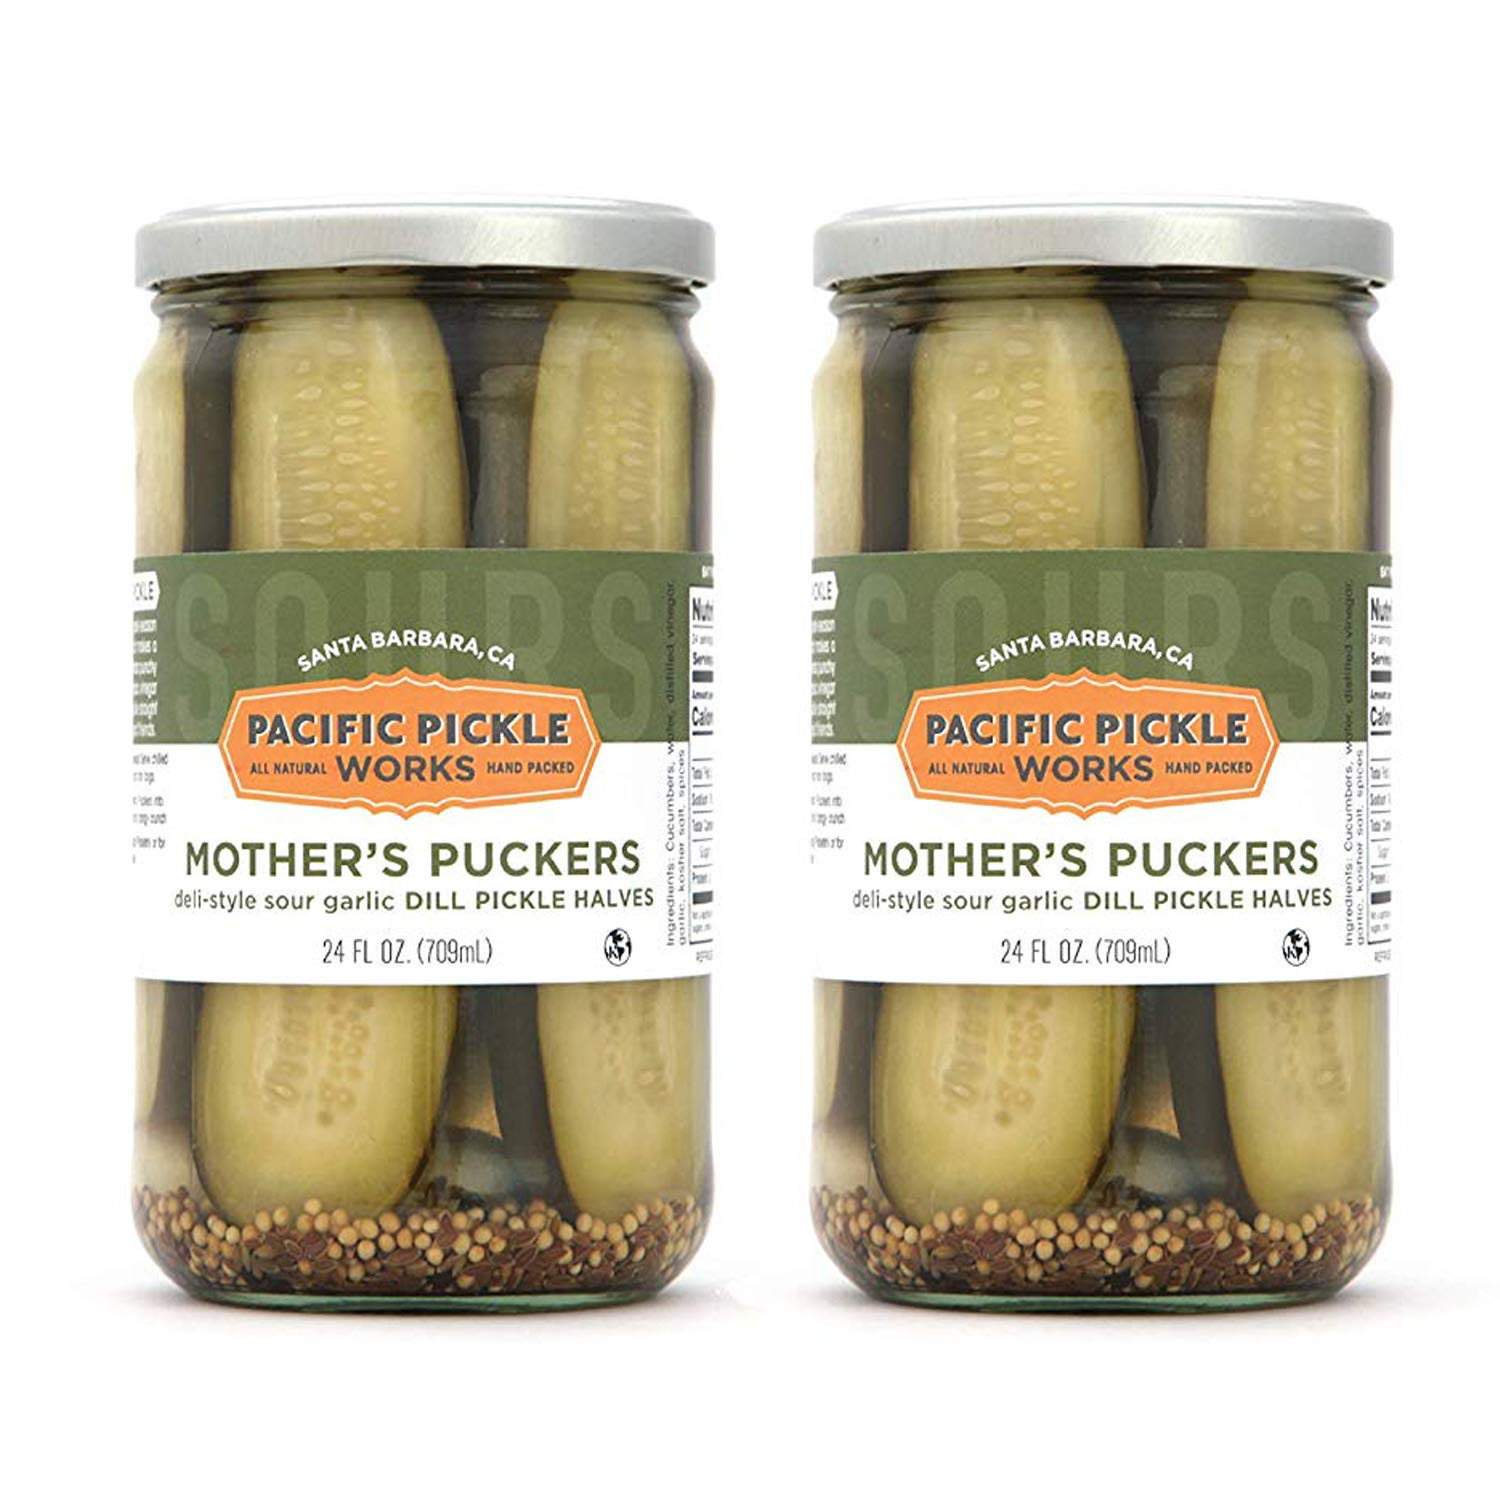 Mother's Puckers 2-pack - Mesa Mall Home-style New Free Shipping 24oz pickles dill garlic